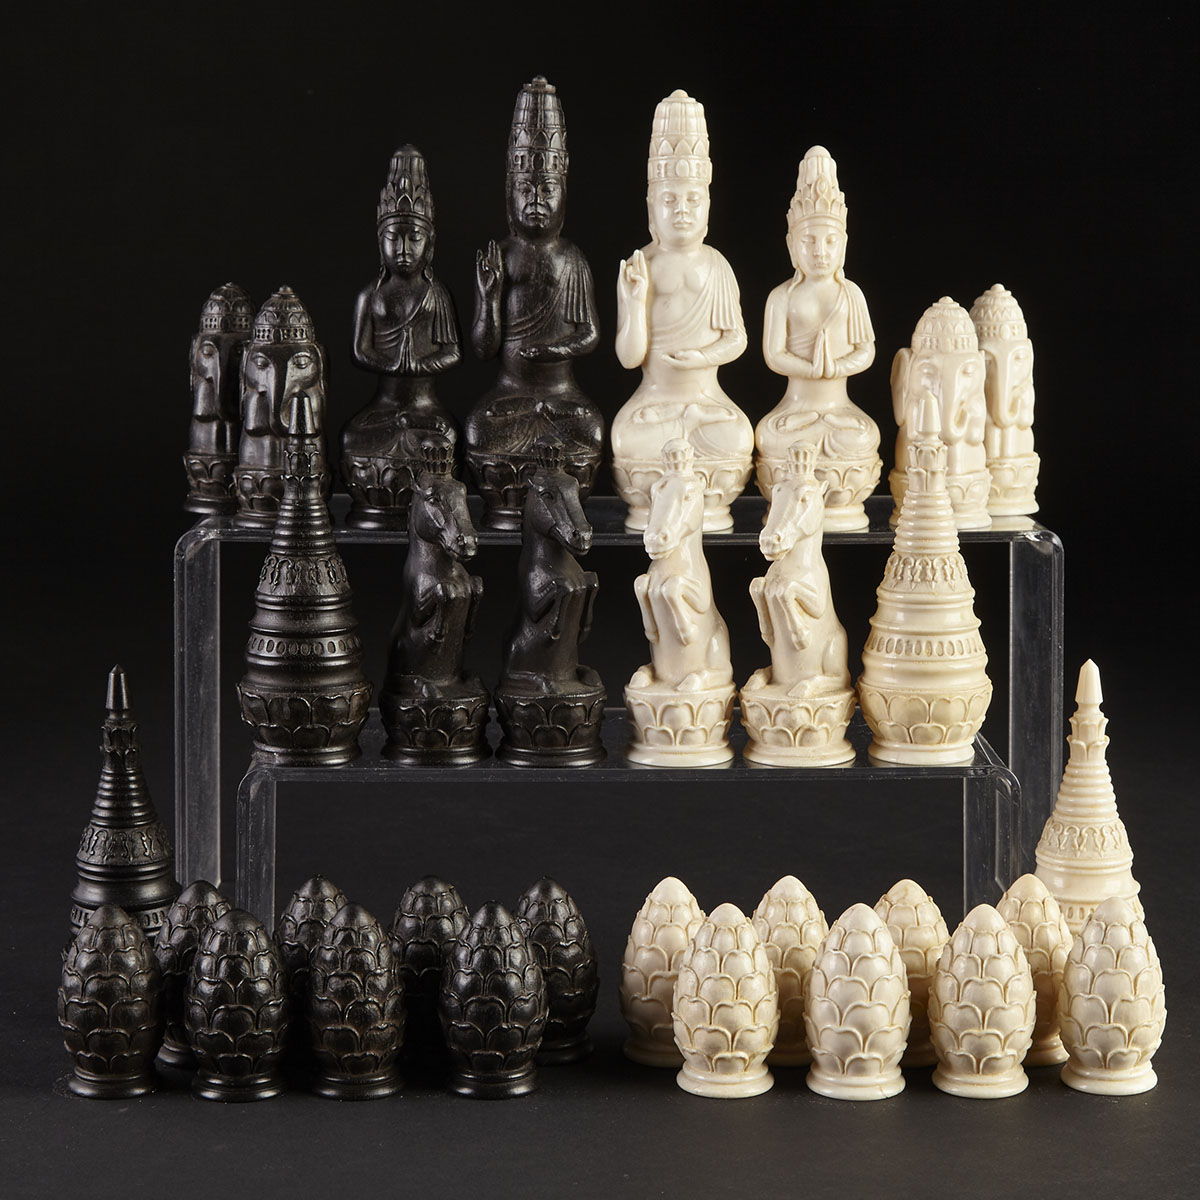 Burmese Buddhist Carved Ebony and Ivory Figural Chess Set, 19th century